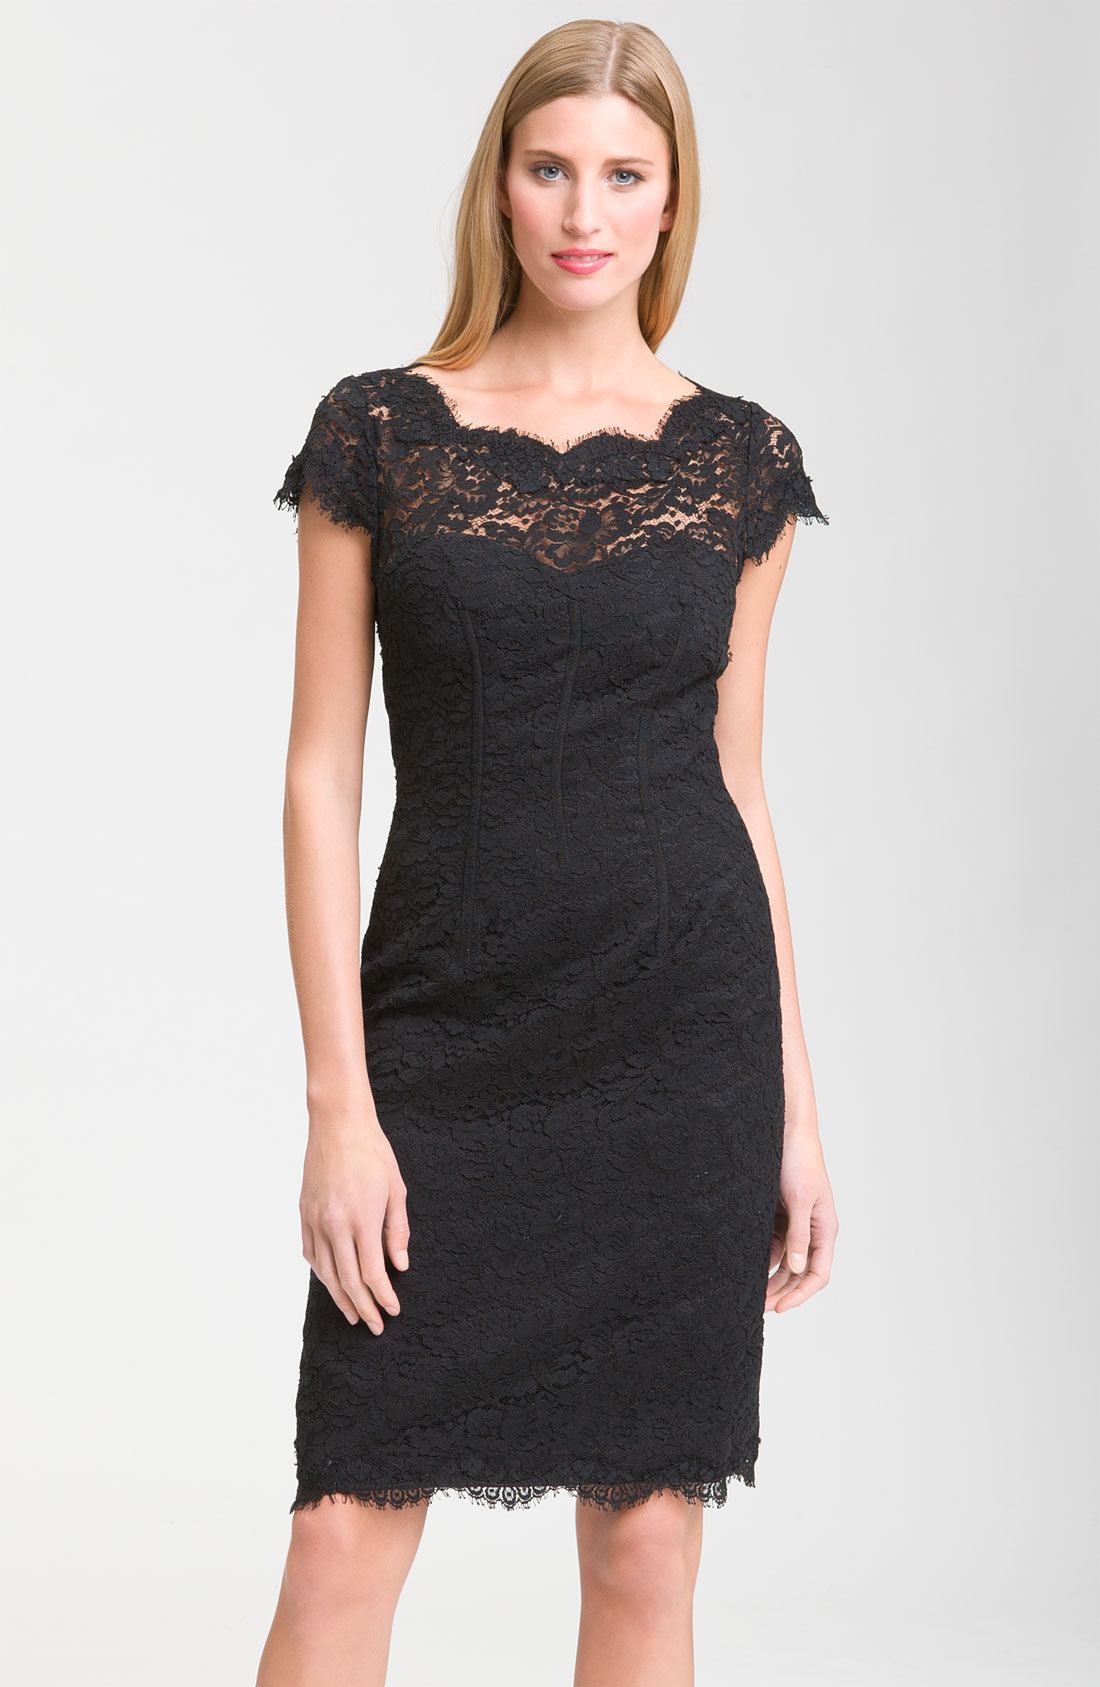 Monique Lhuillier Bridesmaids Lace From Dress